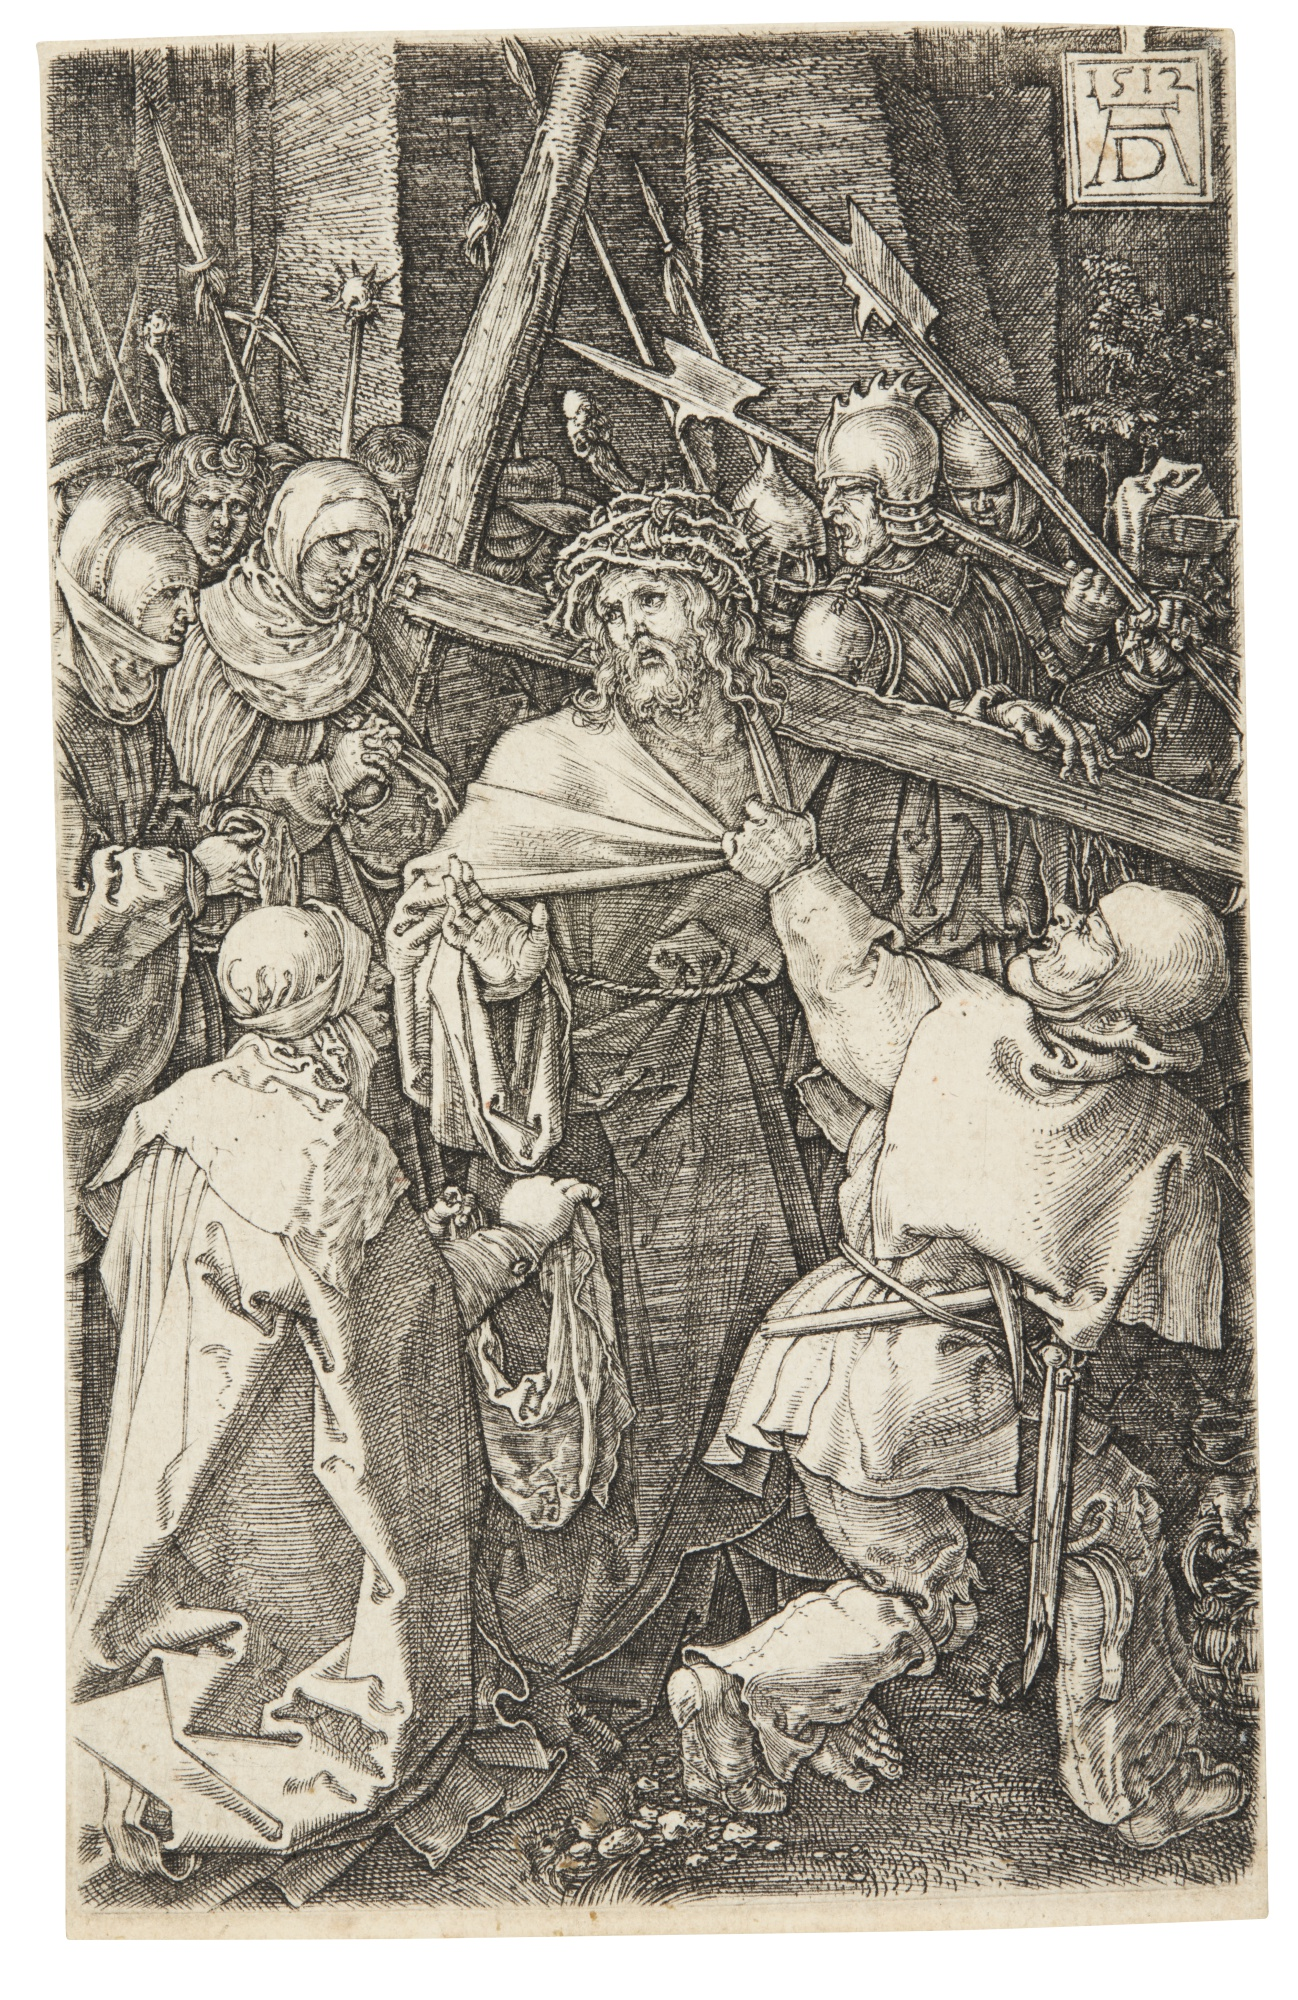 Albrecht Durer-Pilate Washing His Hands; Christ Carrying The Cross; And St Thomas (B. 11, 12, 48; M., Holl. 11, 12, 50)-1512